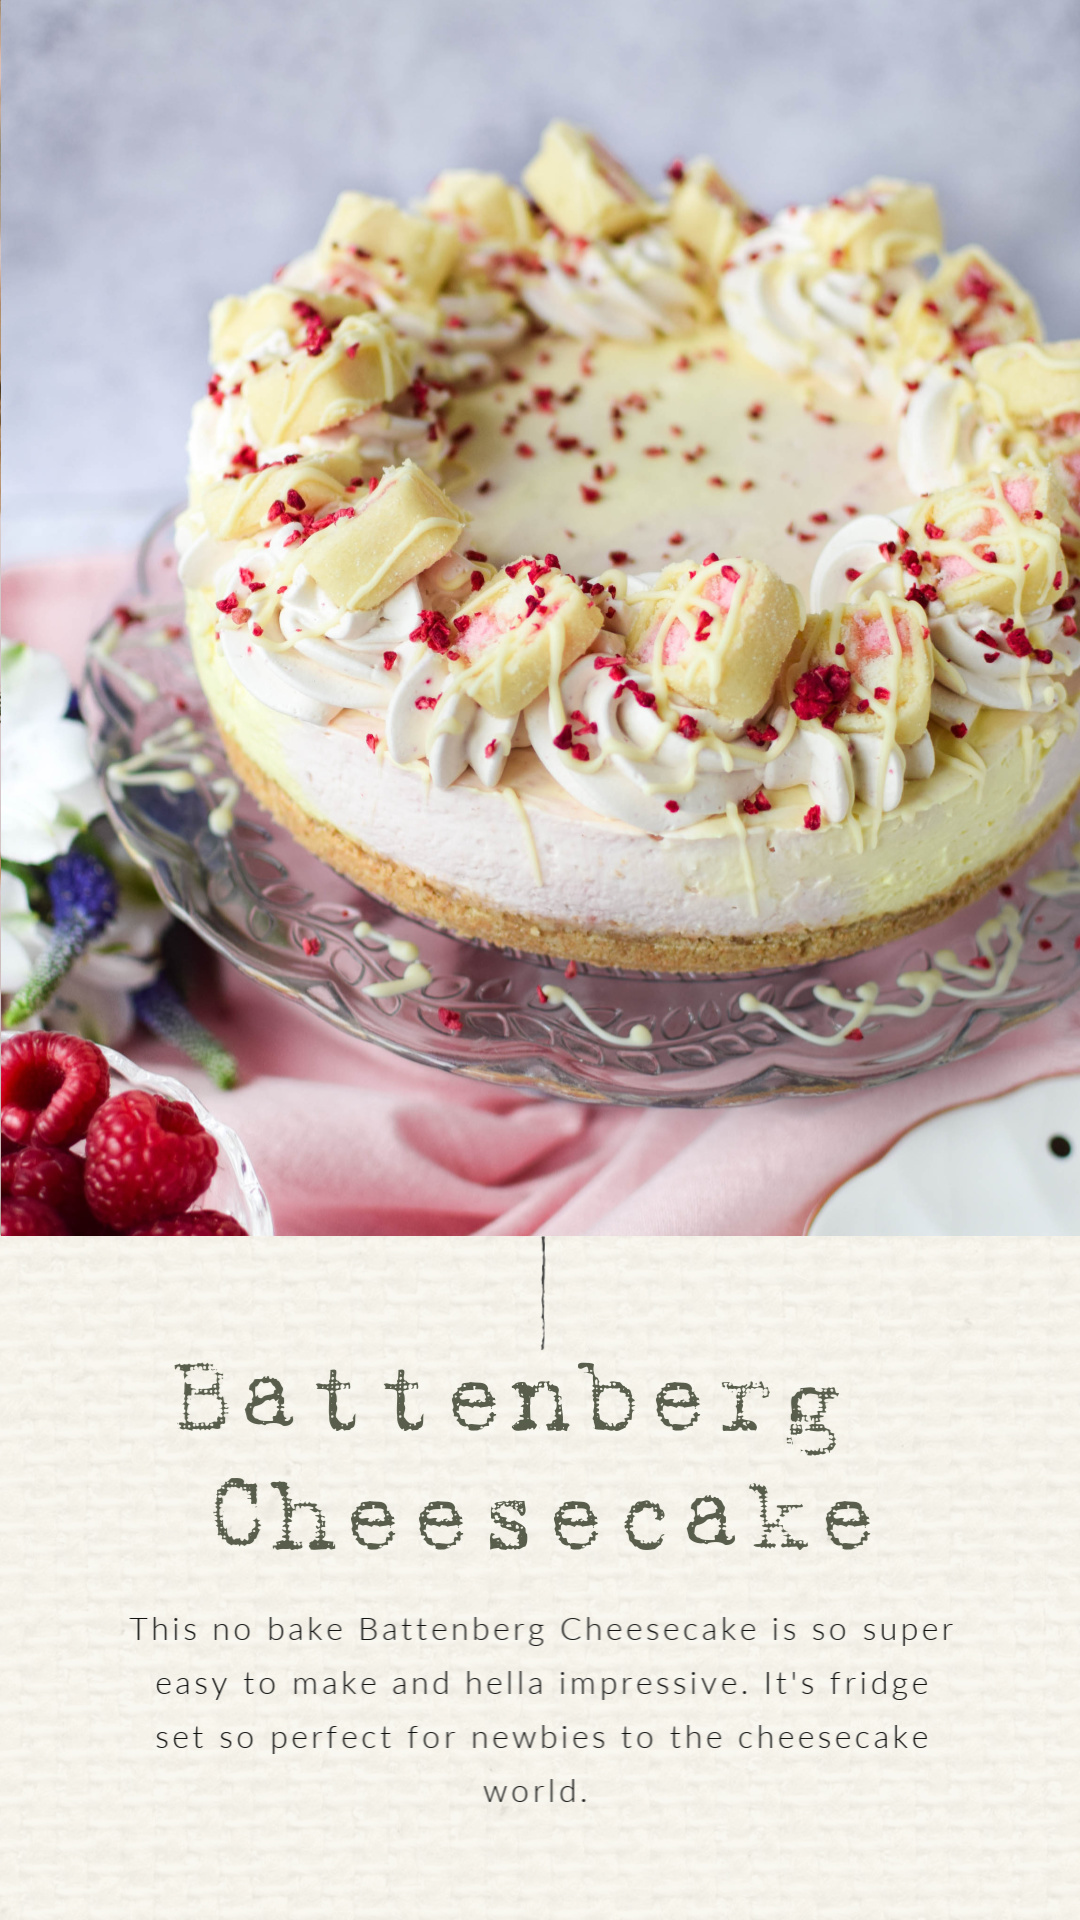 battenberg cheesecake